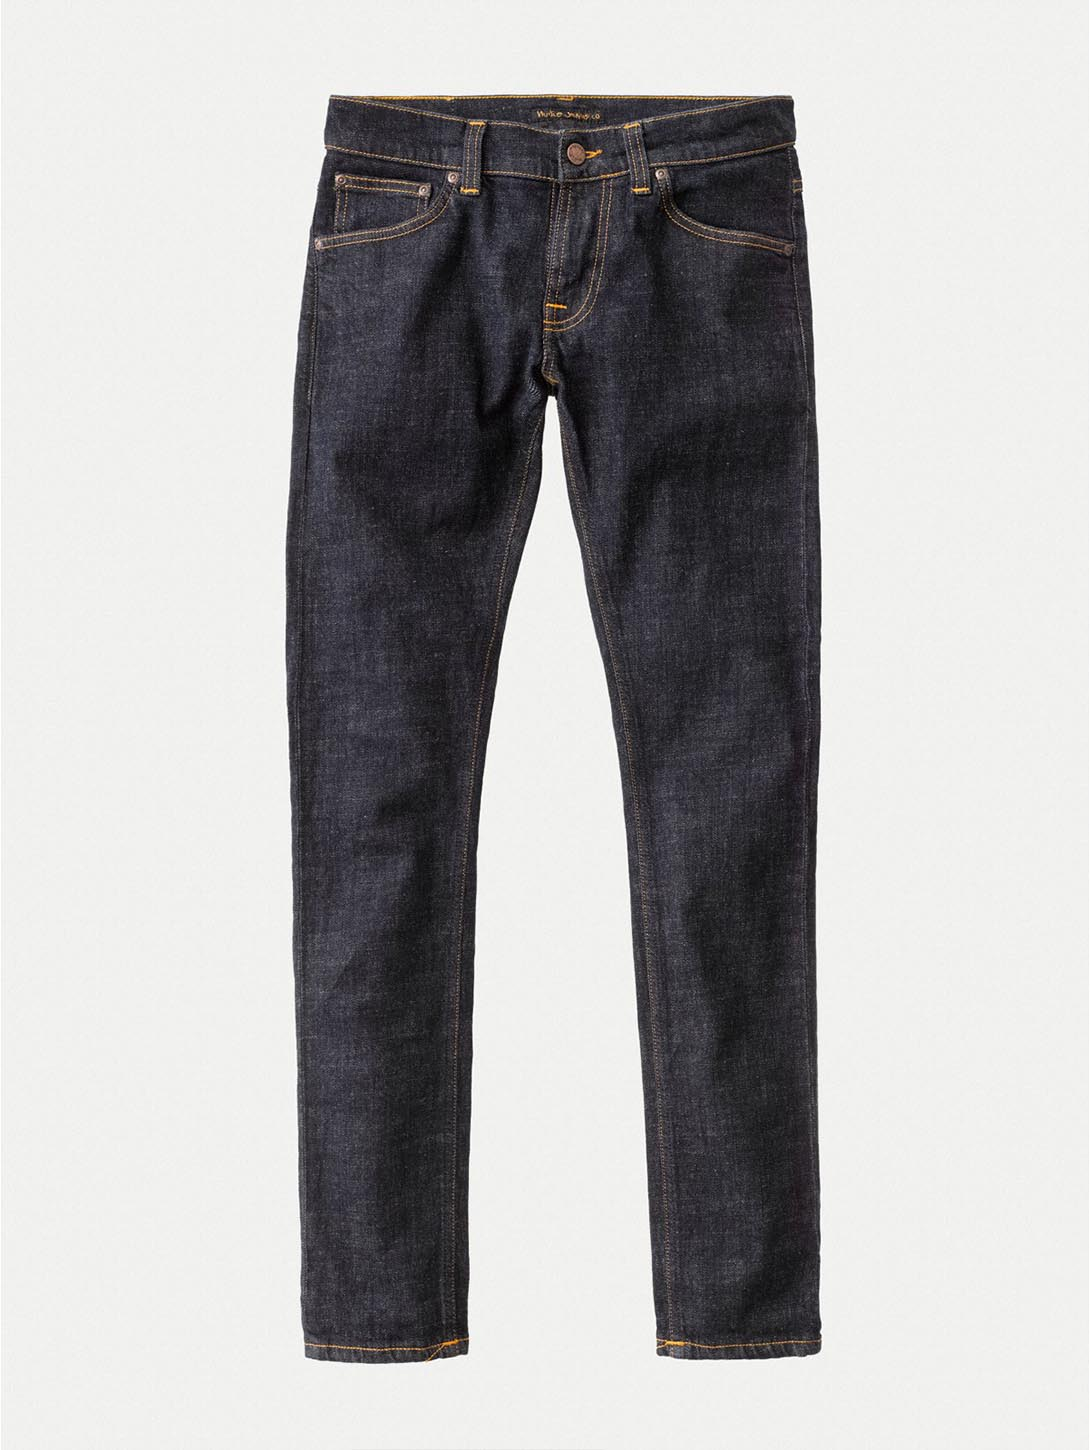 Tight Terry Jean - Rinse Twill-Nudie Jeans-Over the Rainbow